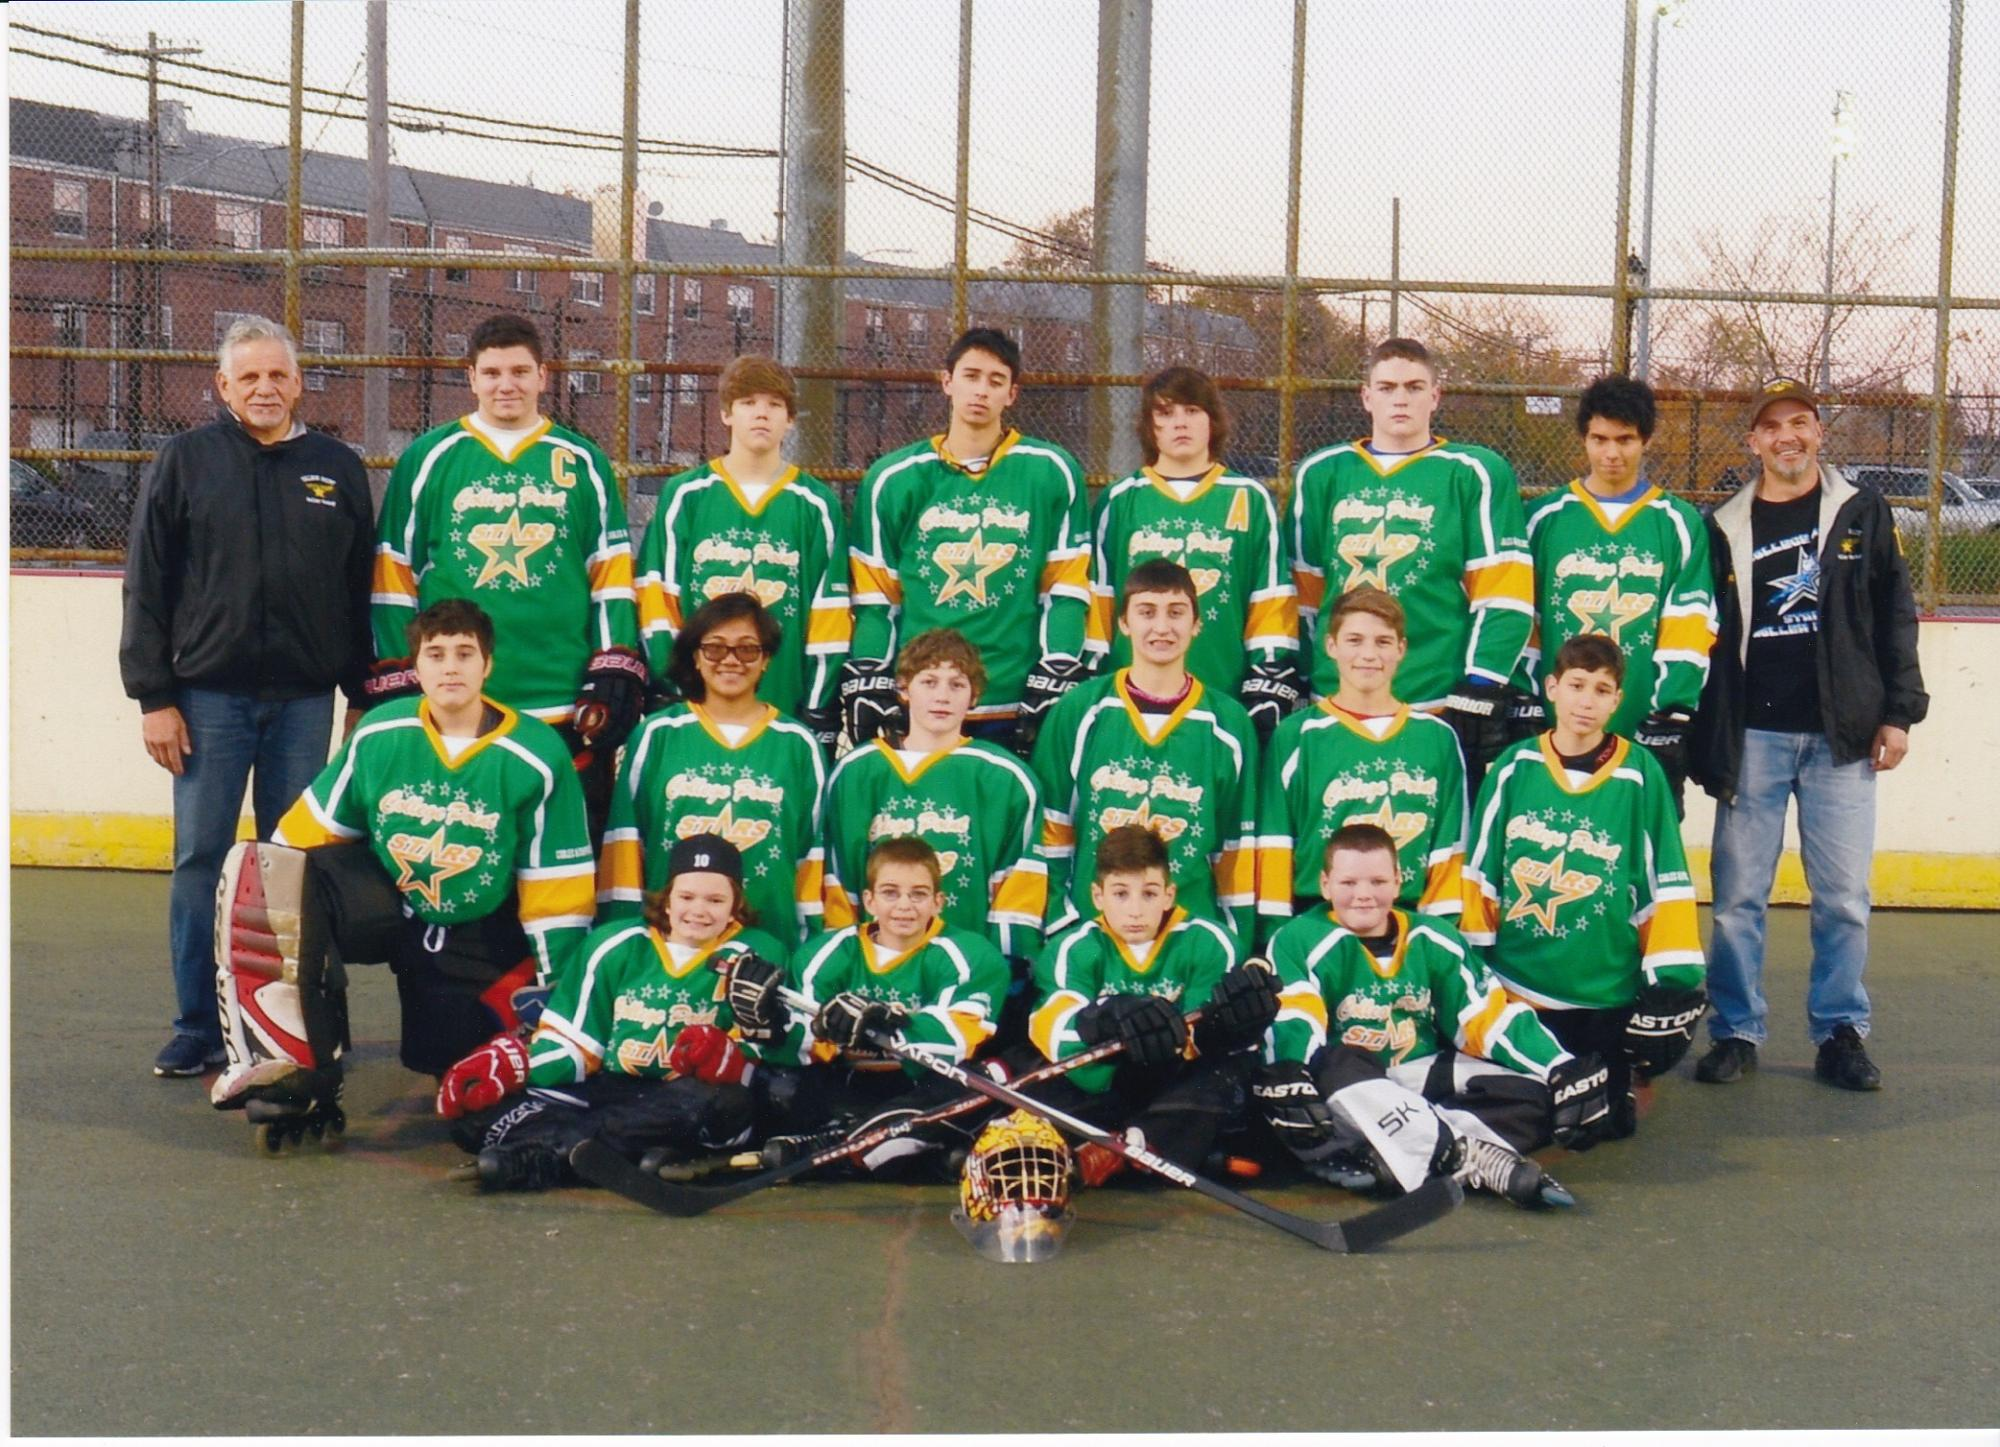 CPT_15-16_Jr_Green_Team.jpg